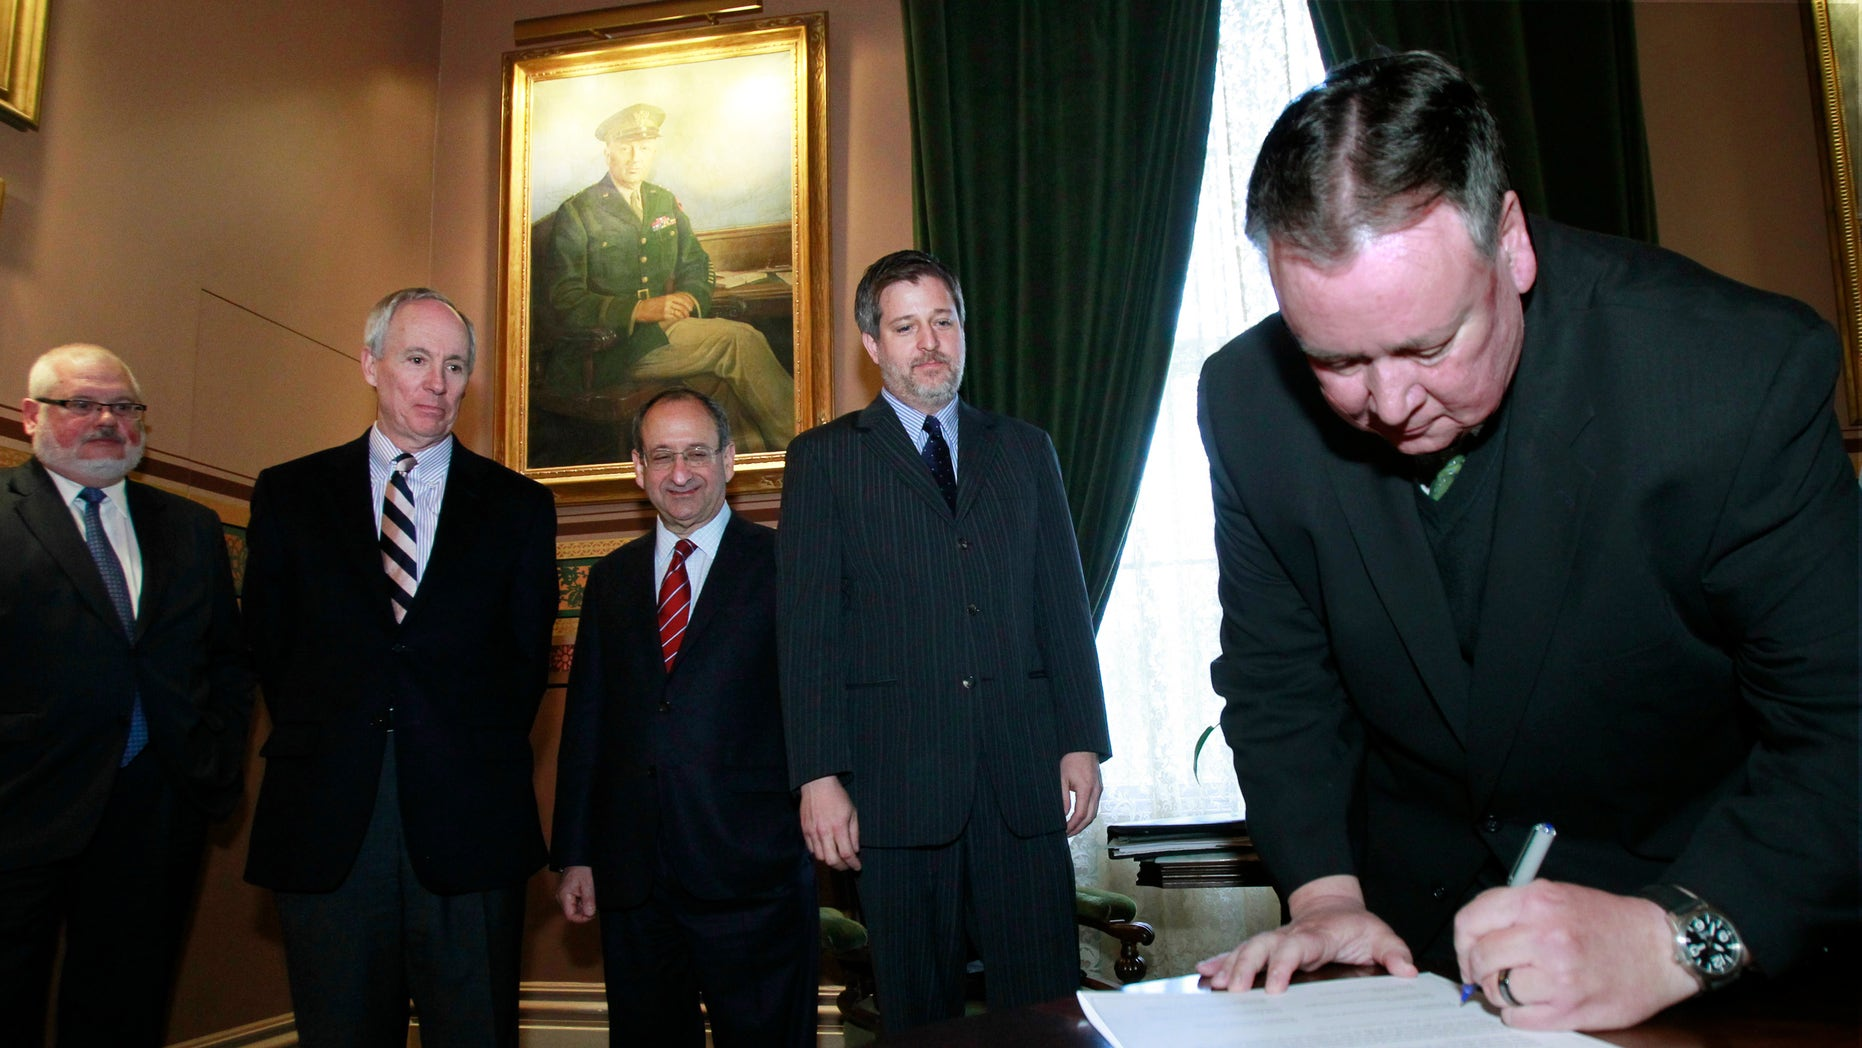 Vermont Technical College President Phil Conroy, right, signs a memorandum of understanding to create the Vermont Higher Education Food Systems Consortium on Thursday, Nov. 7, 2013, in Montpelier, Vt. The institutions plan to share courses in agriculture and food so that students enrolled at one school can take a course, do research or get an internship at another college. Looking on are, from left, Vermont State Colleges Chancellor Tim Donovan, University of Vermont President Thomas Sullivan, Vermont Law School Dean Marc Mihaly and Sterling College President Matthew Allen Derr. (AP Photo/Toby Talbot)